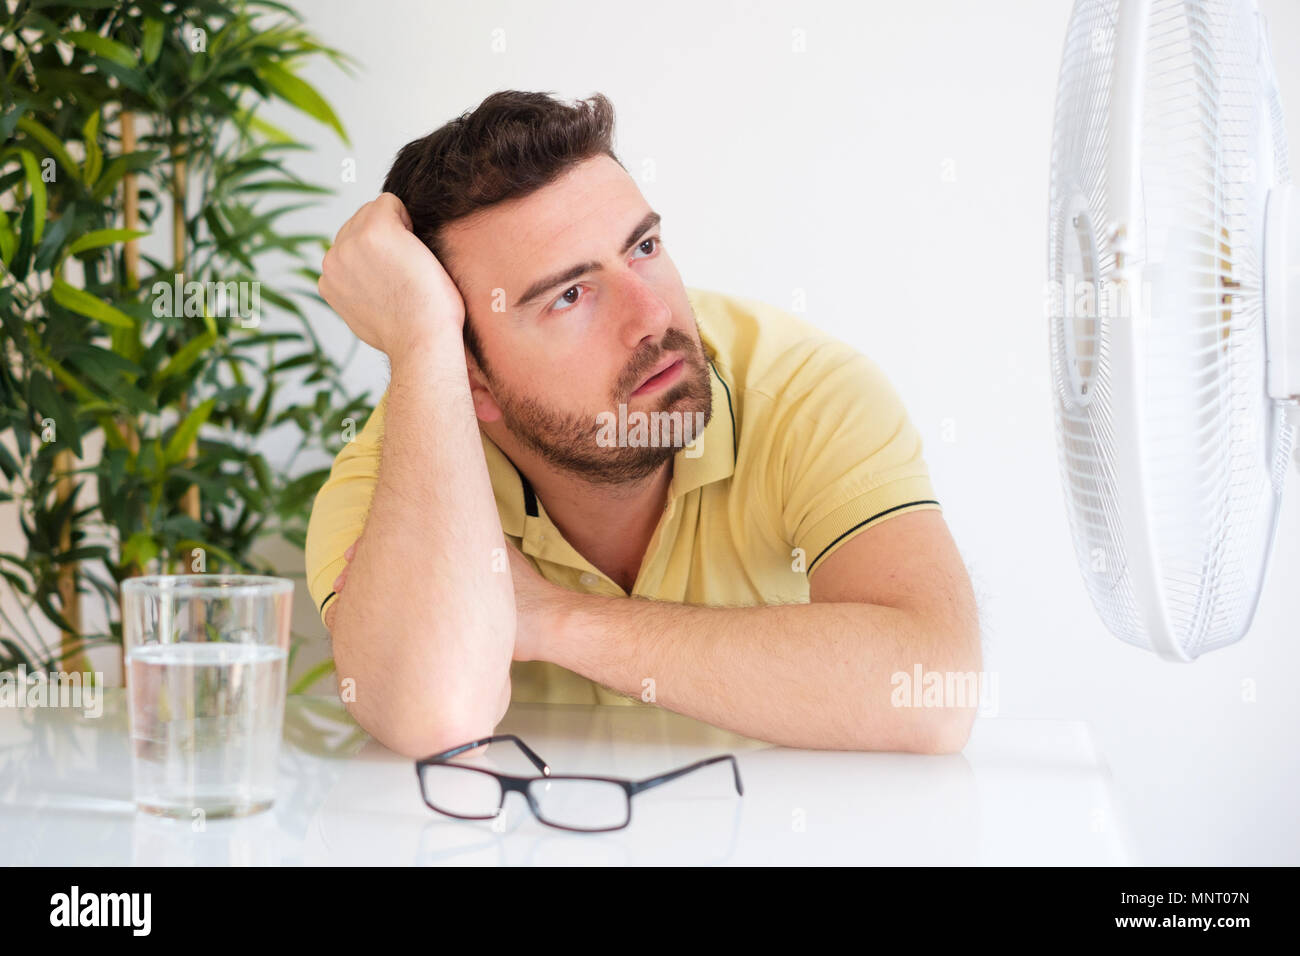 Young man sweating because summer heat haze - Stock Image